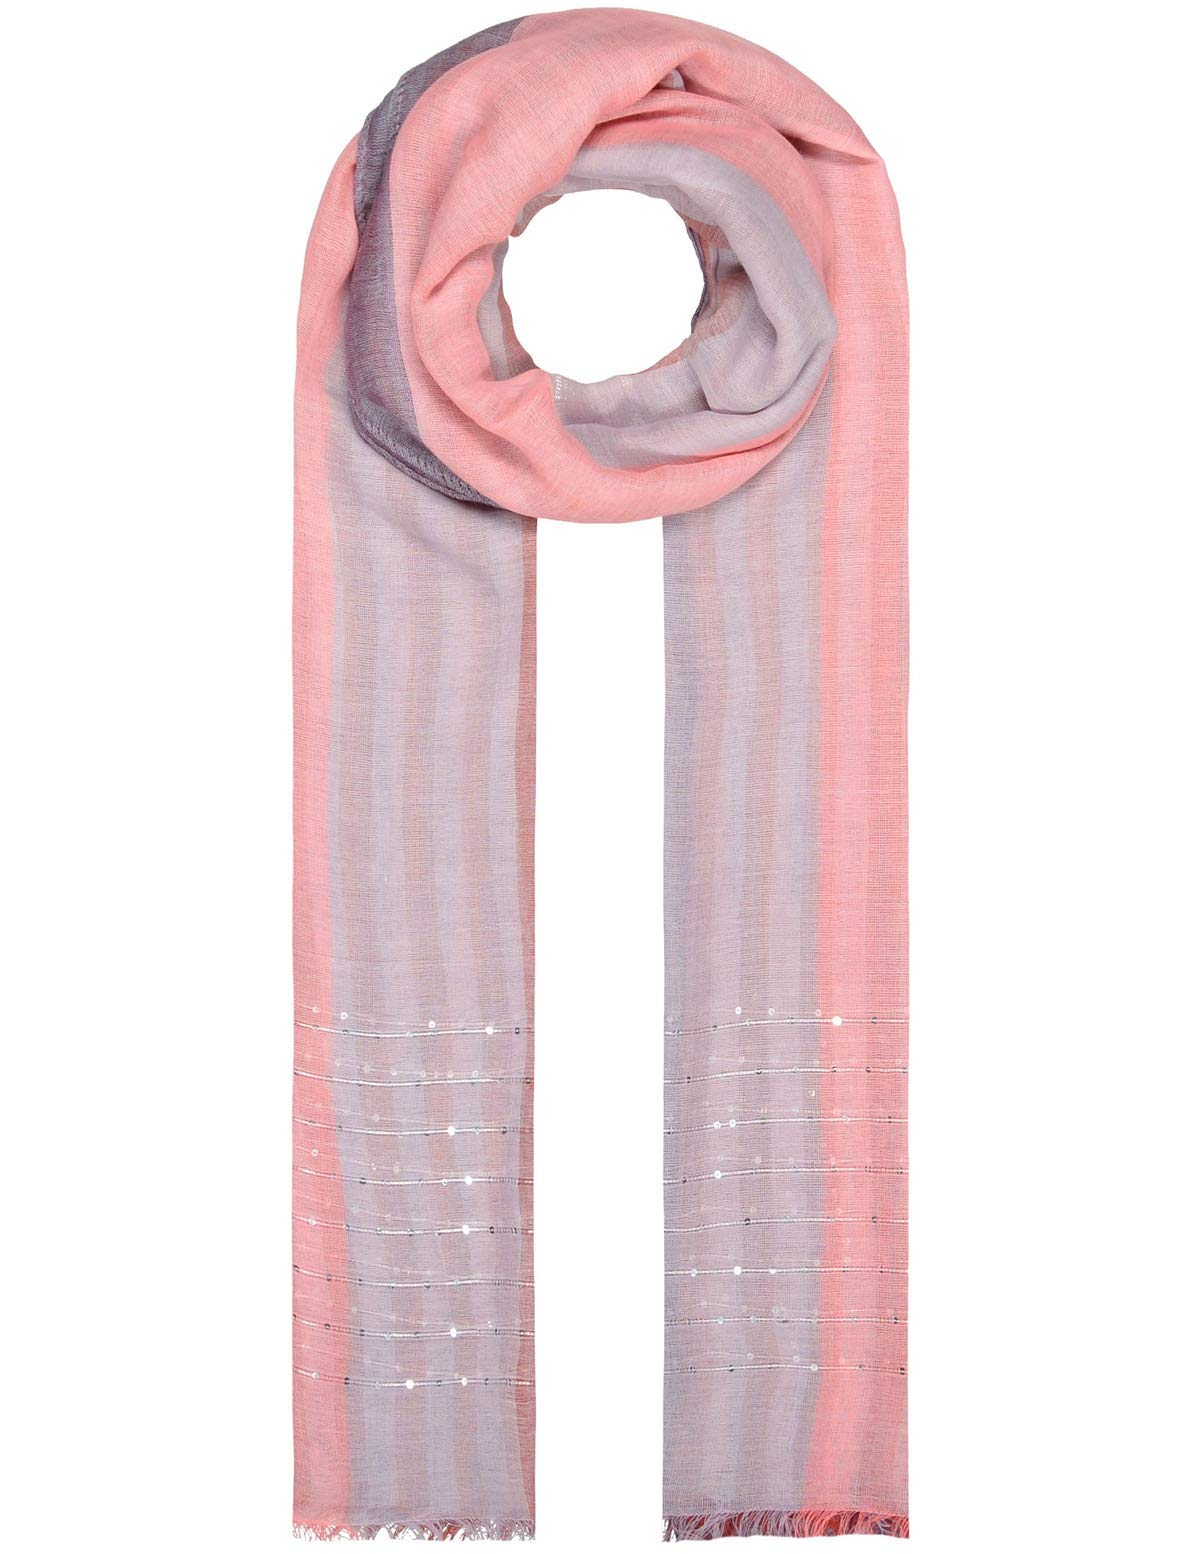 Basefield Schal/Tuch lila/pink